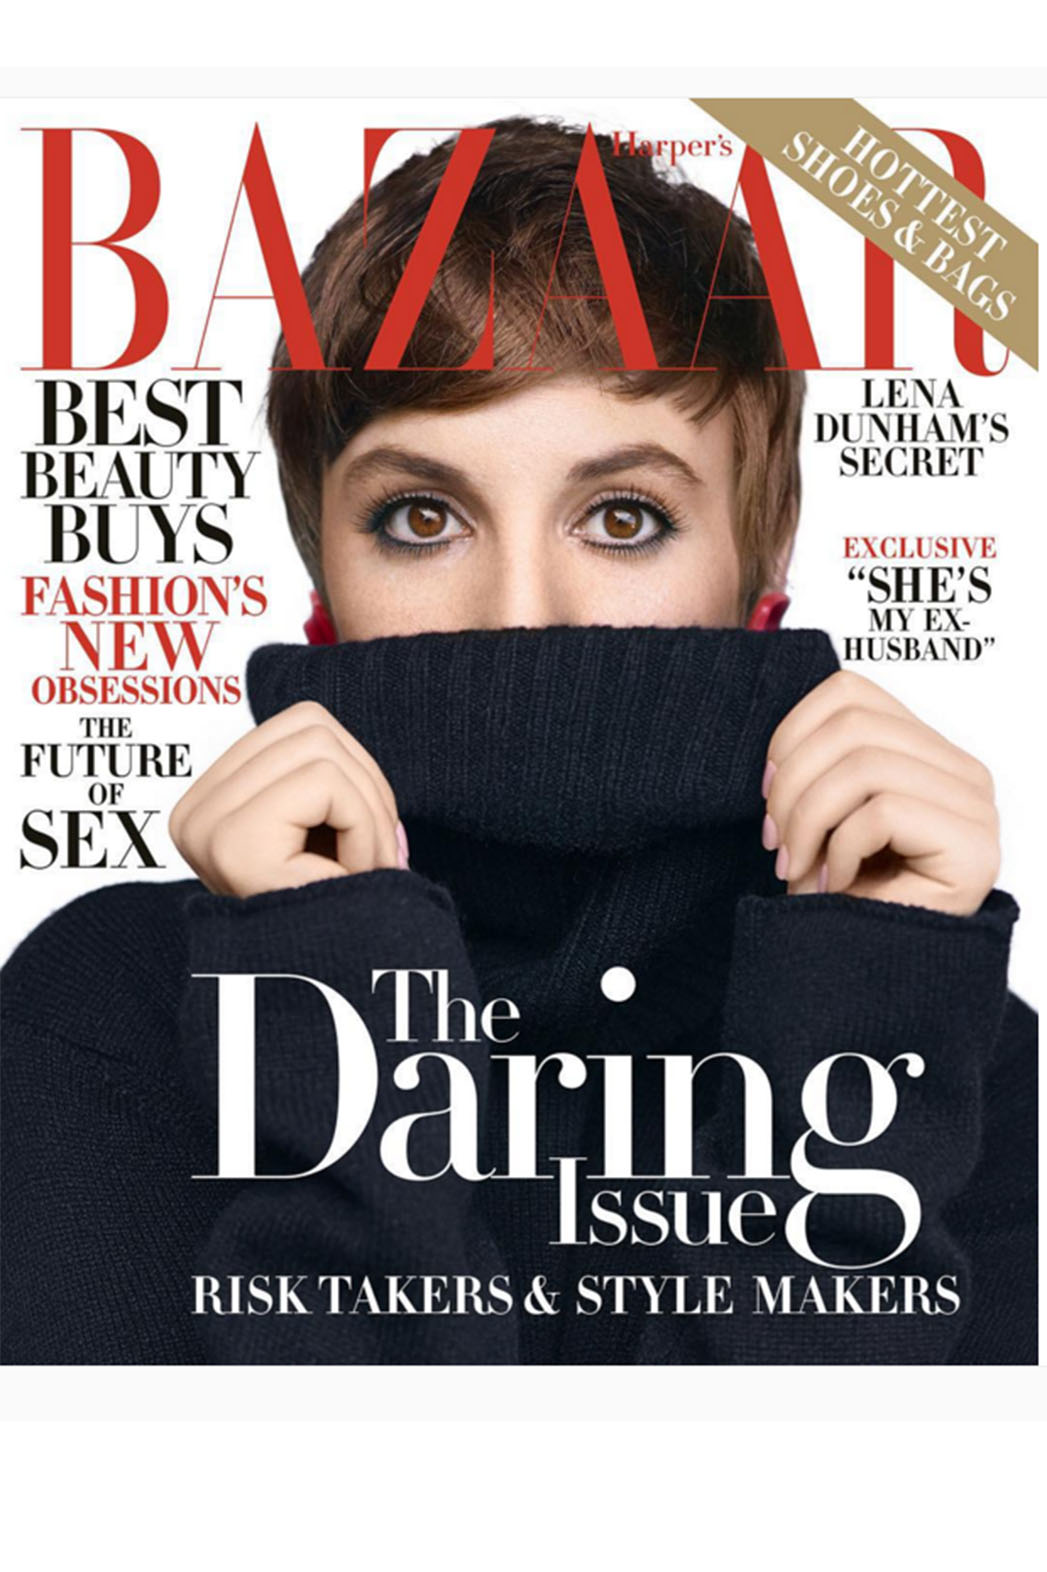 Lena Dunham's Harper's Cover Screen Shot- H 2015